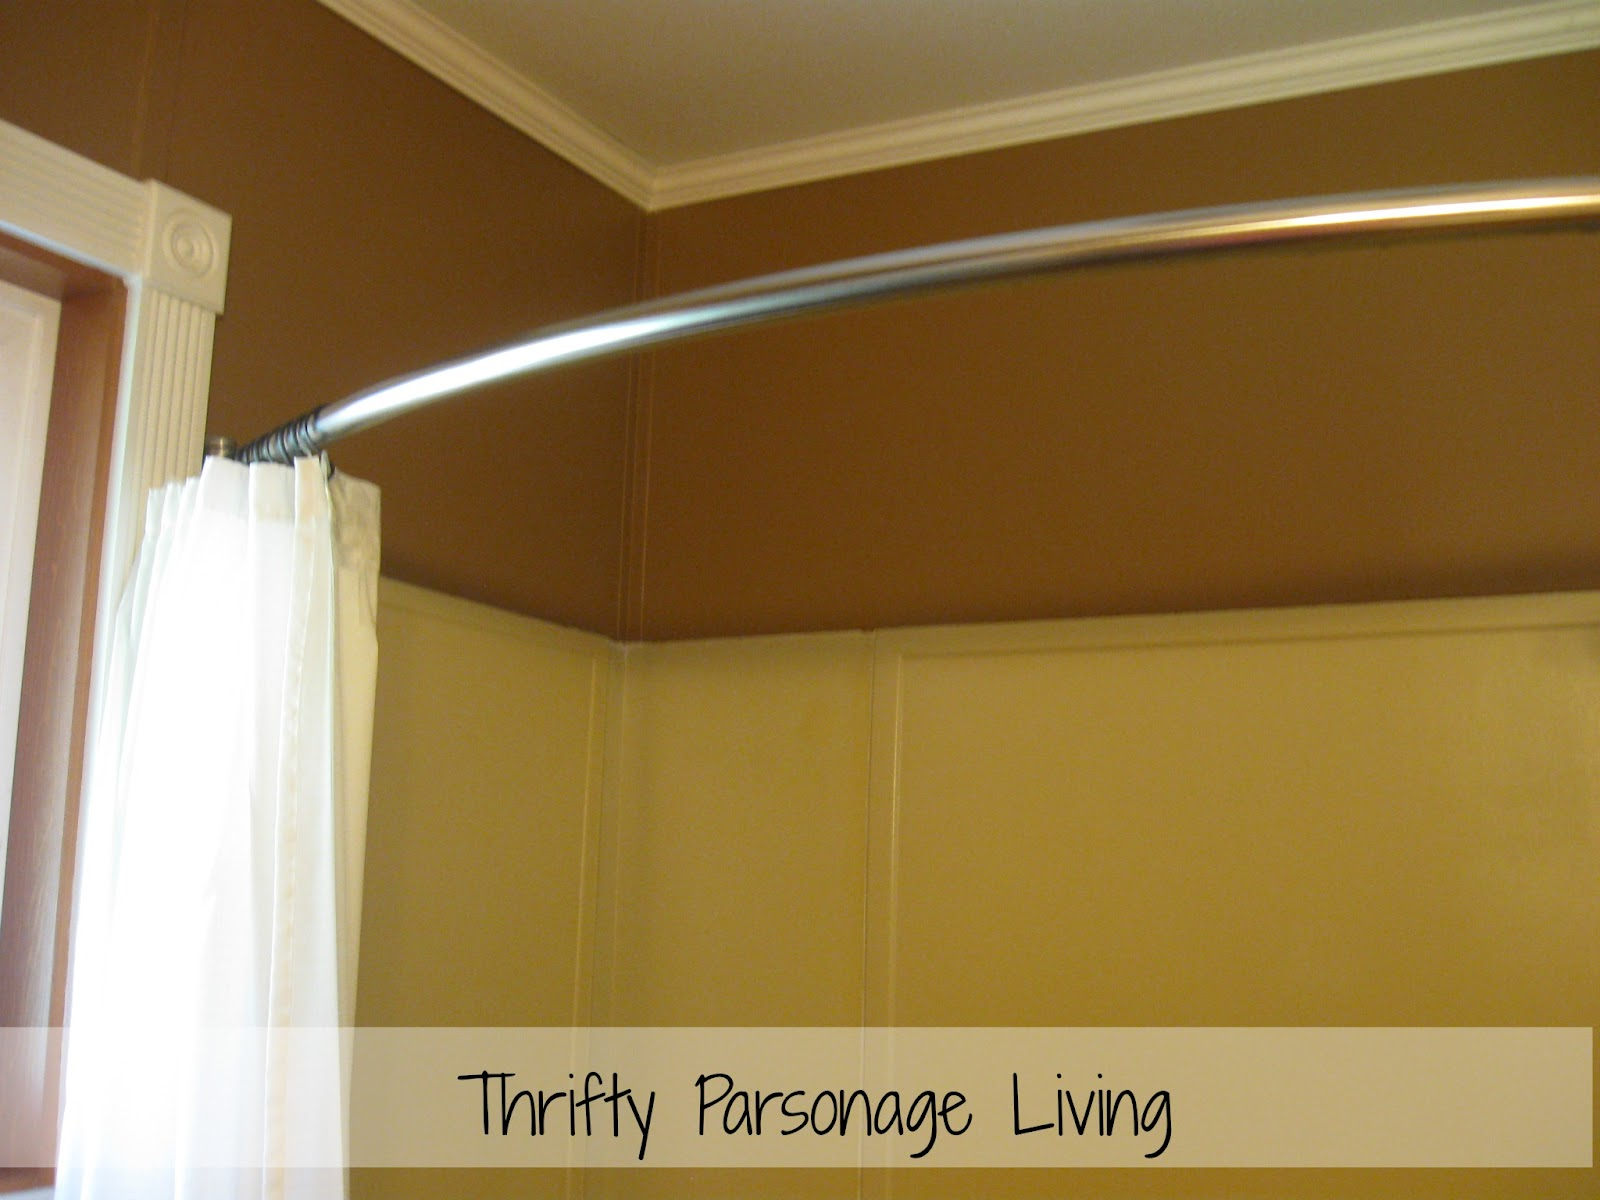 Thrifty Parsonage Living: BATHROOM MAKEOVER & PAINTING PLASTIC WALLS